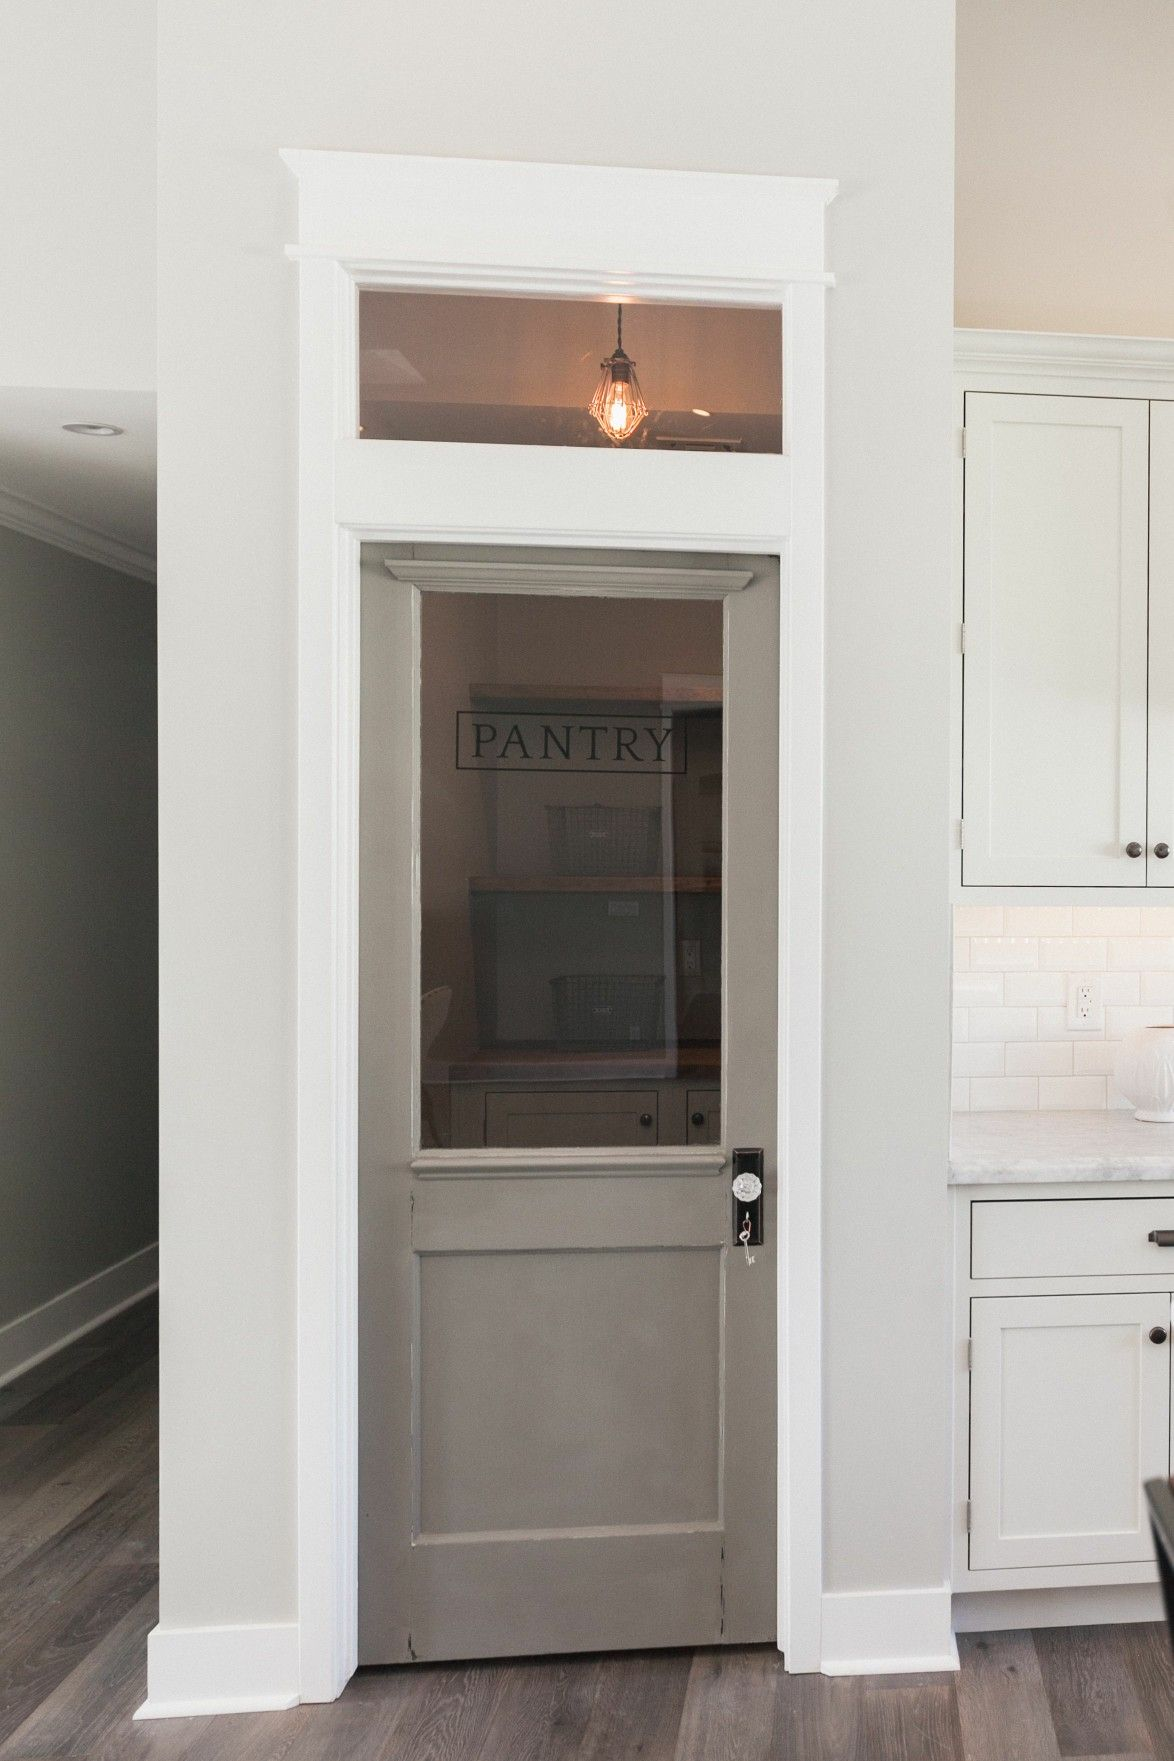 Pin by ingrid alexandria on home pinterest future for the laundry room pantry door transom window love the white woodwork gray door and crystal door knob planetlyrics Images